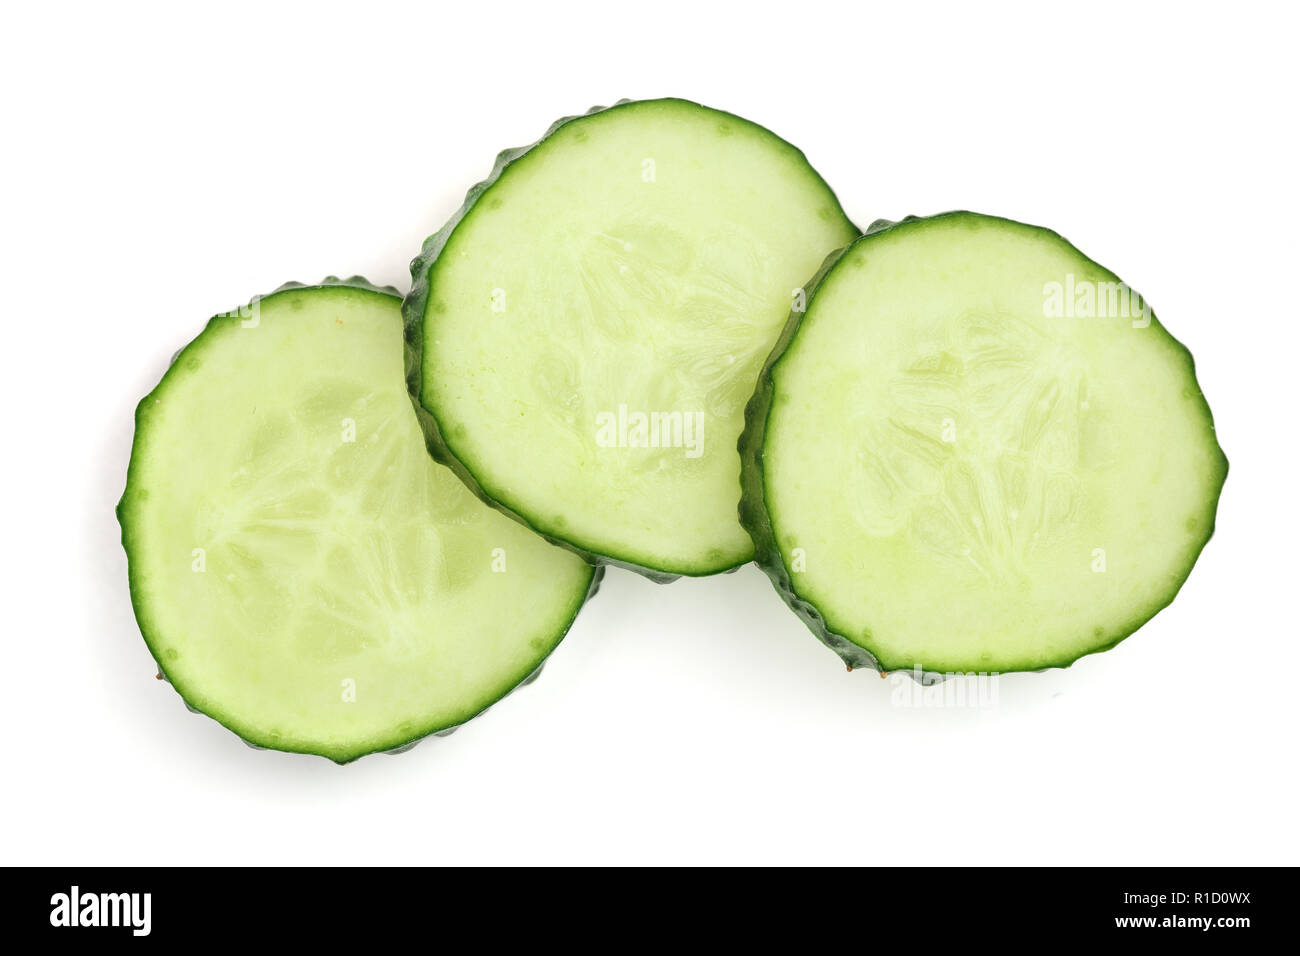 Cucumber slices isolated on white background. Top view. Flat lay pattern - Stock Image